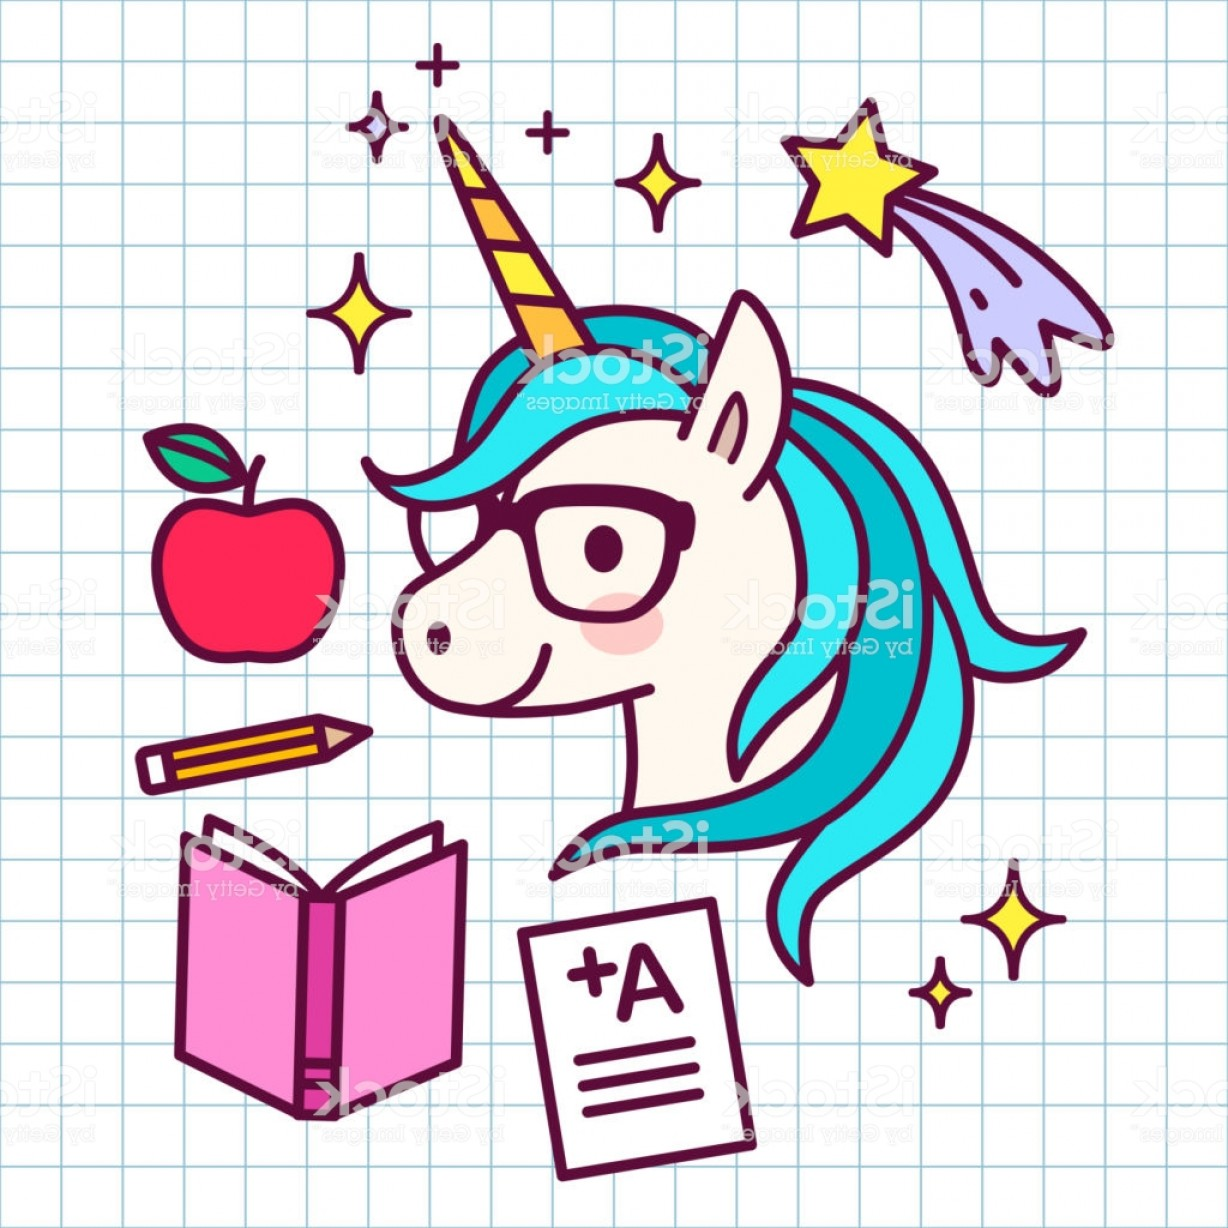 School Themed Vector: Cute Cartoon Magic Unicorn With Eyeglasses With School Themed Icons Around On Grid Gm